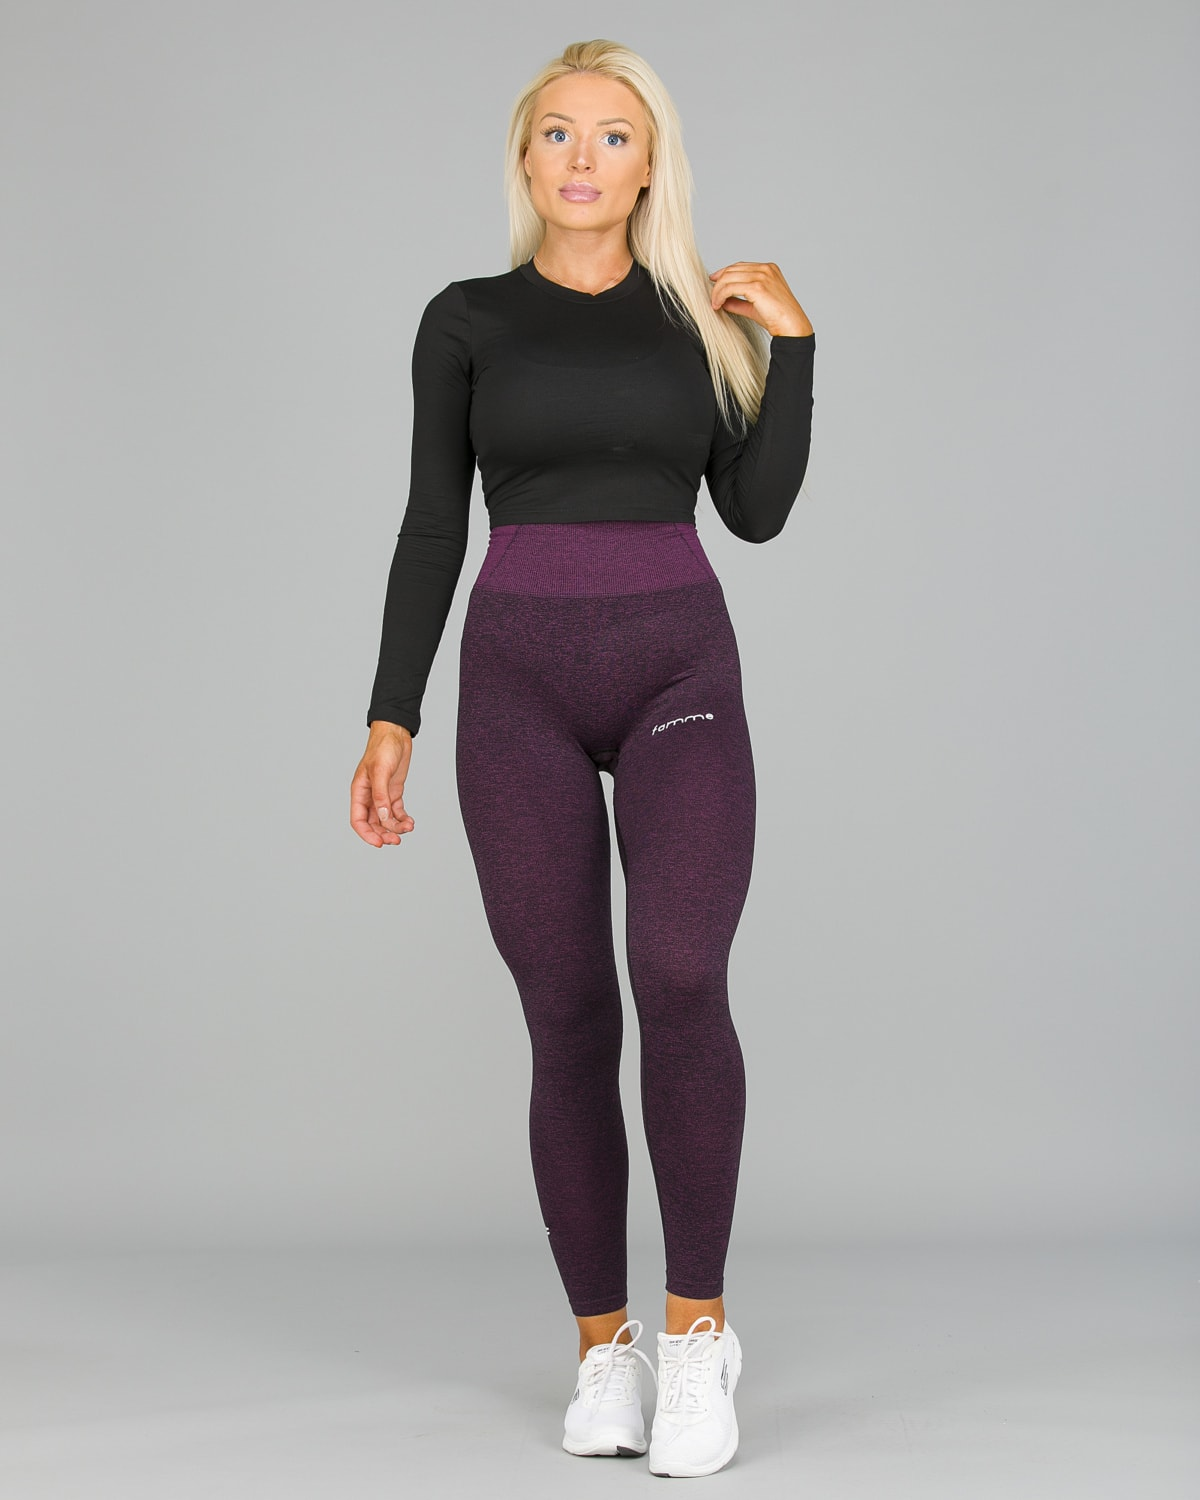 FAMME Lavender Seamless Essential Tights12